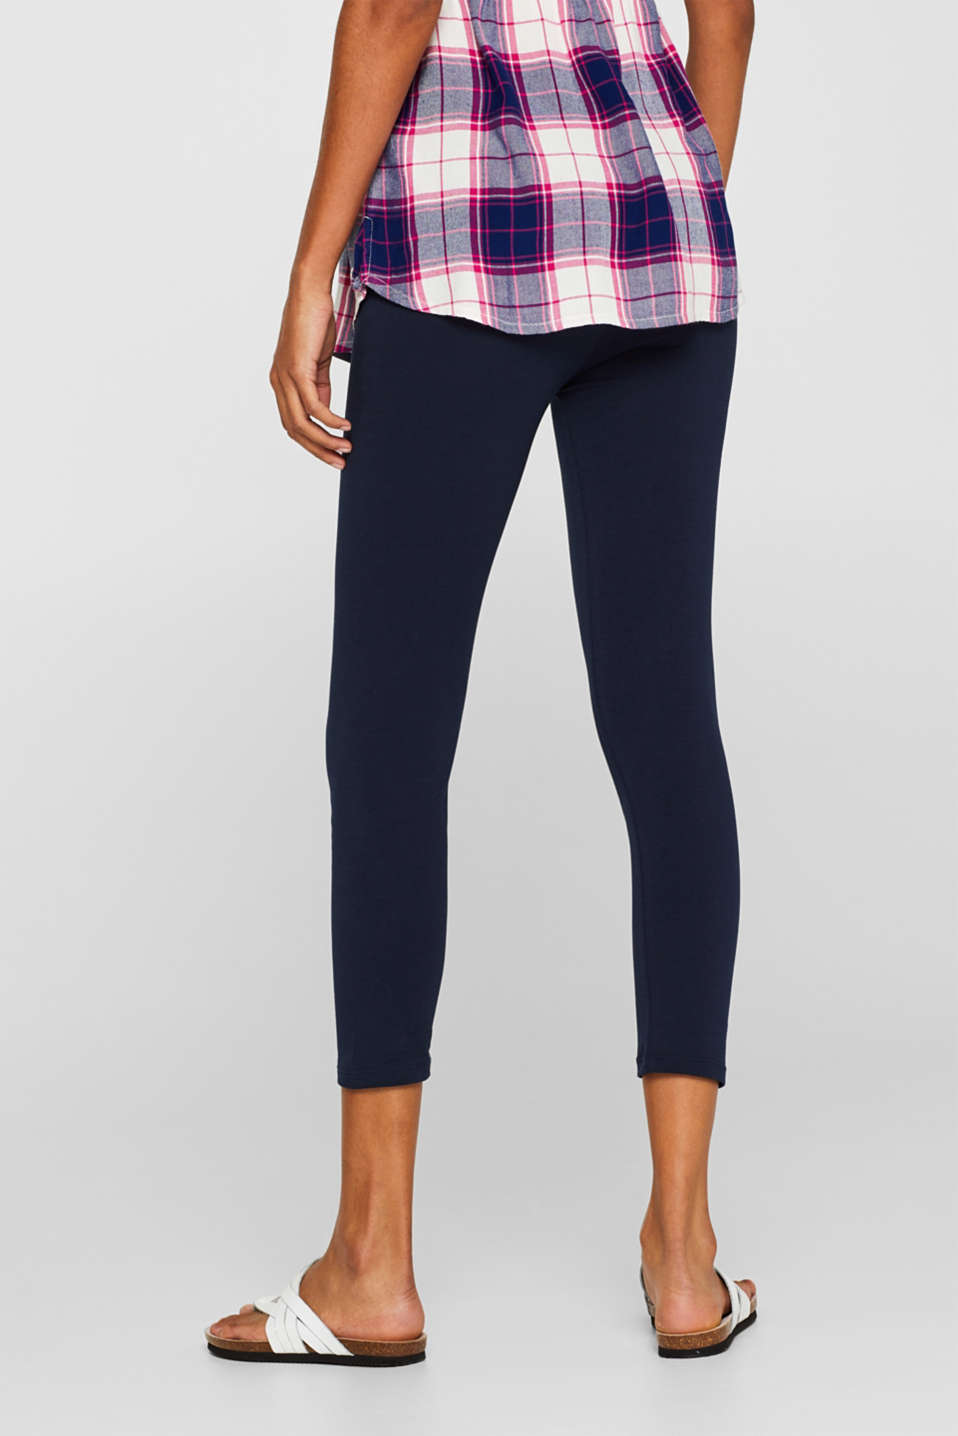 Leggings with an under-bump waistband, LCNIGHT BLUE, detail image number 4